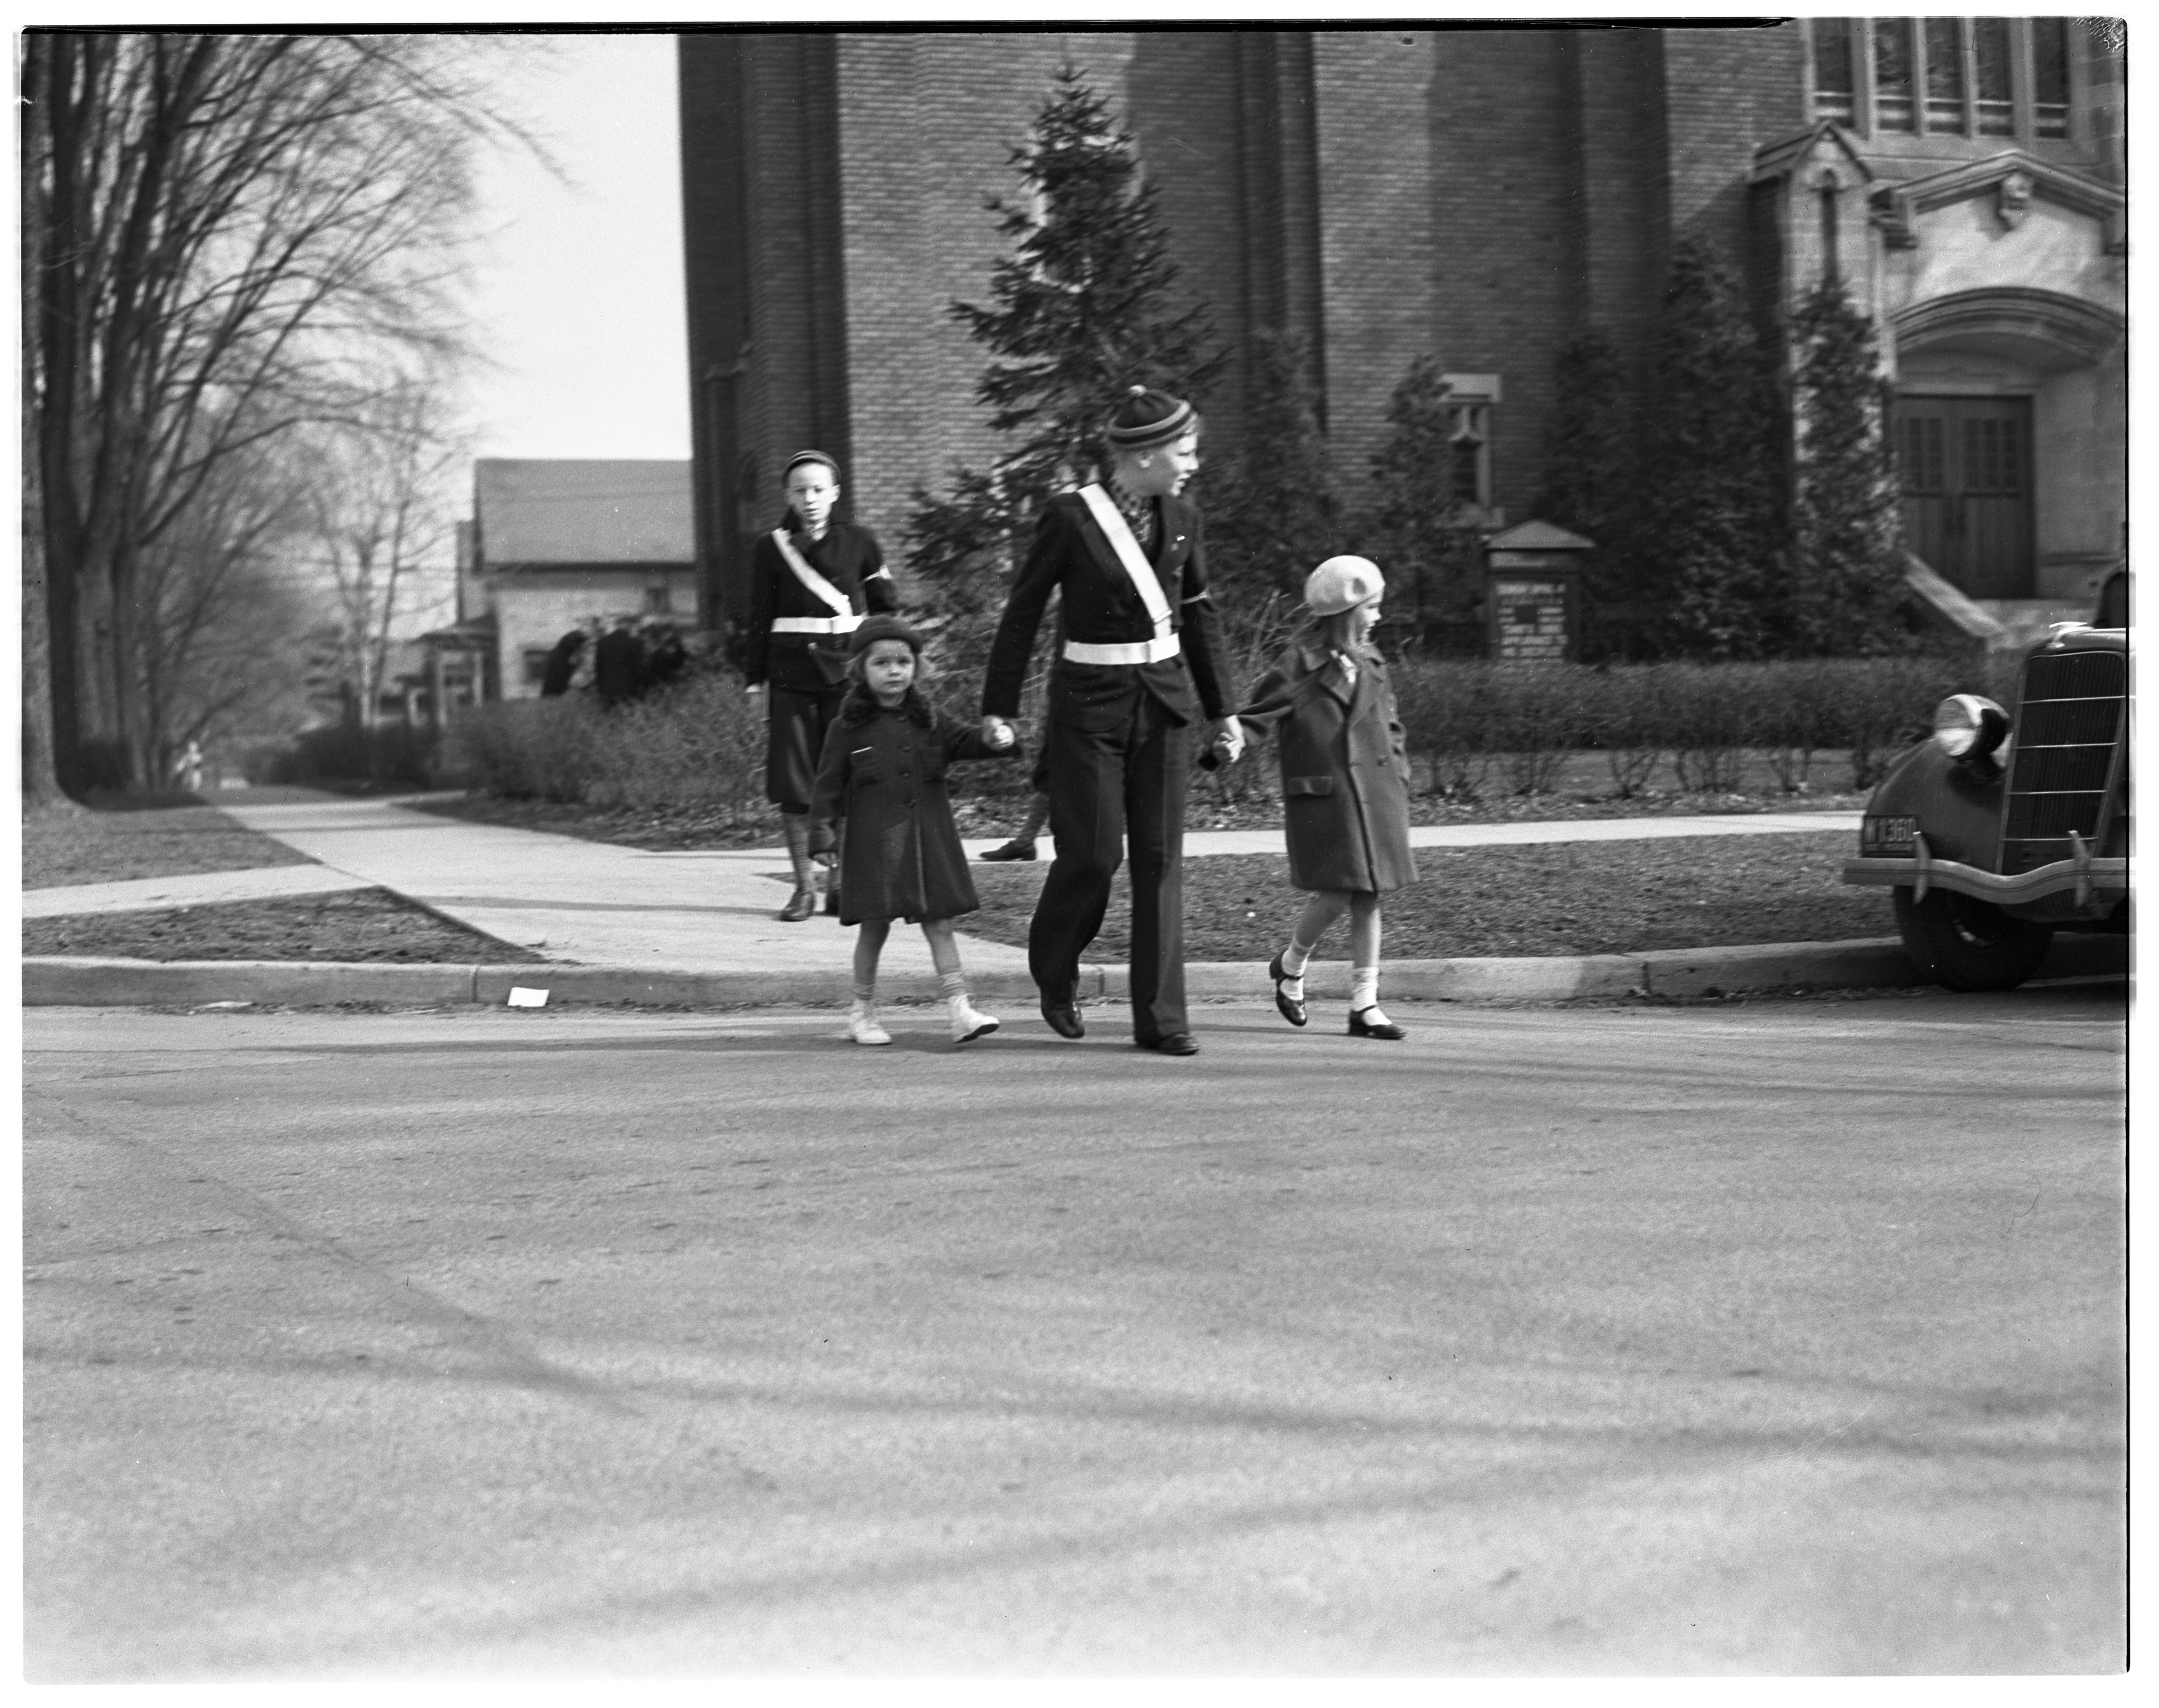 St. Paul's Traffic Patrol image